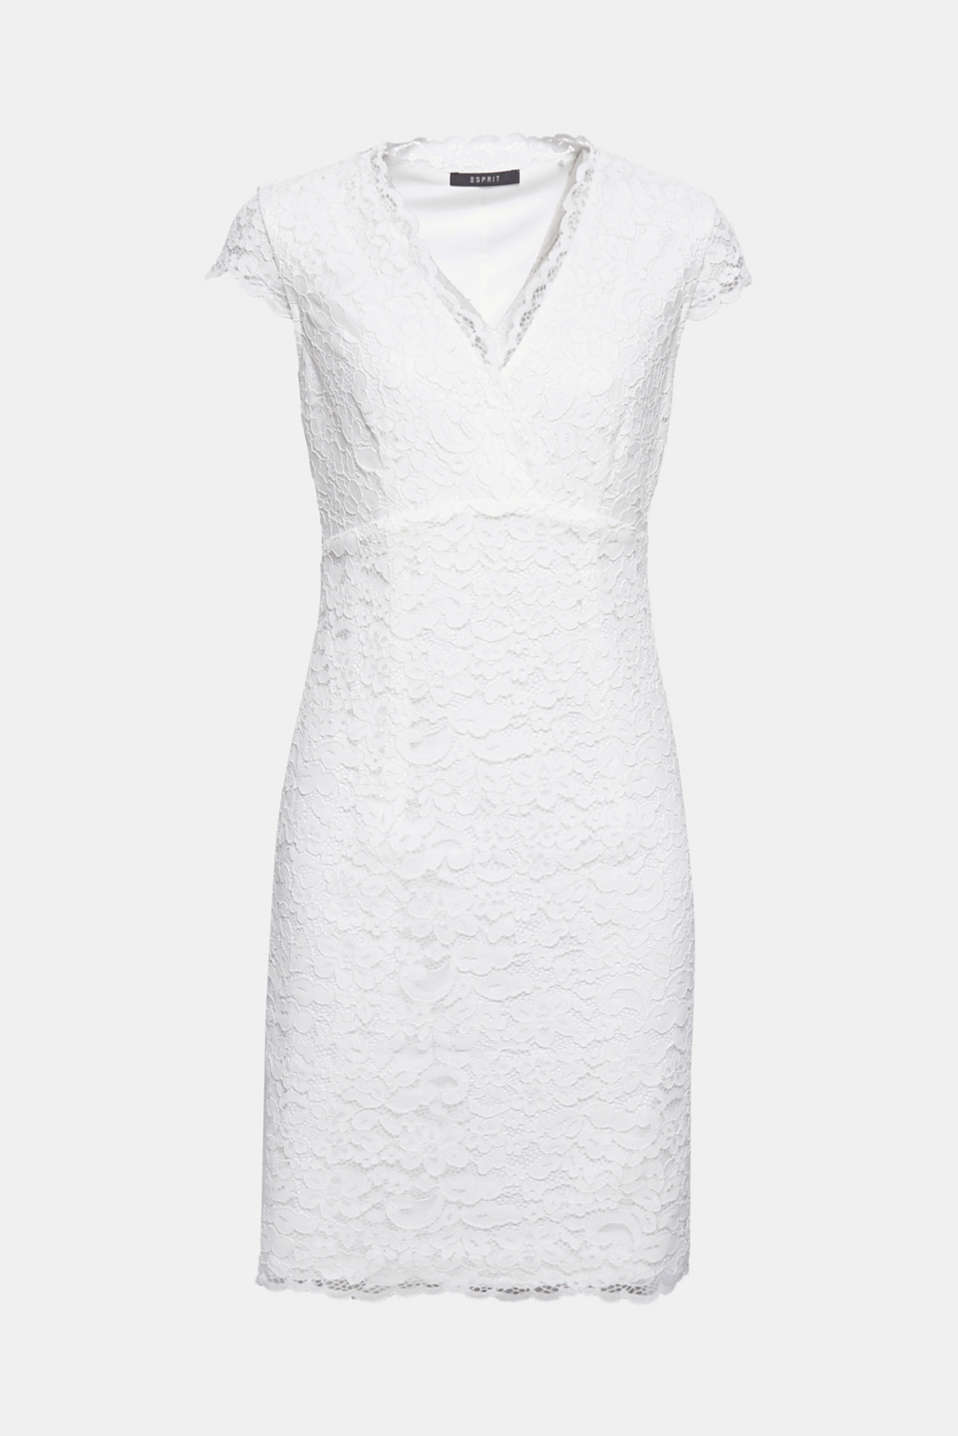 Pure romance! This sheath dress is breathtakingly eye-catching thanks to its decorative floral lace.